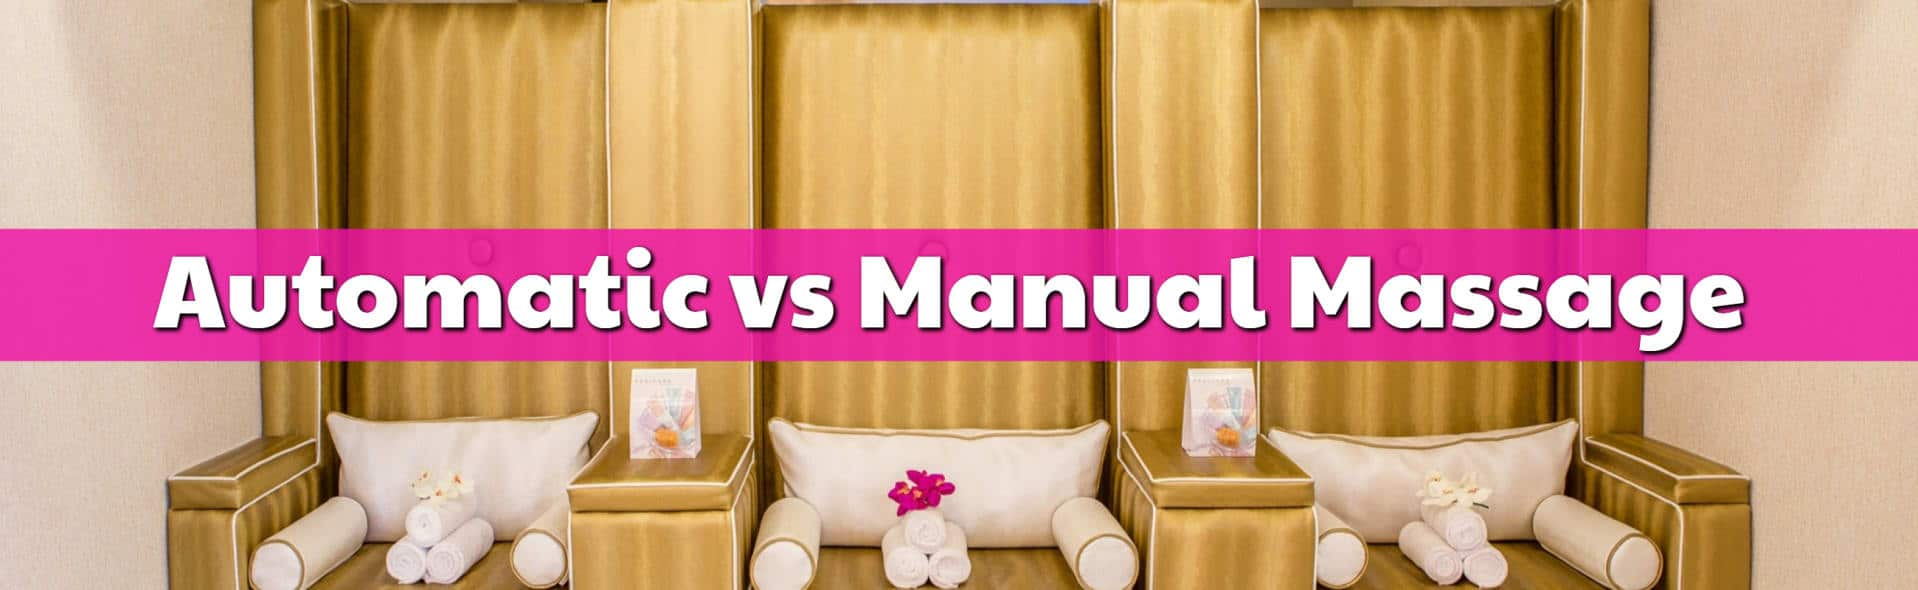 Difference Between Automatic Massage Programs and Manual Ones